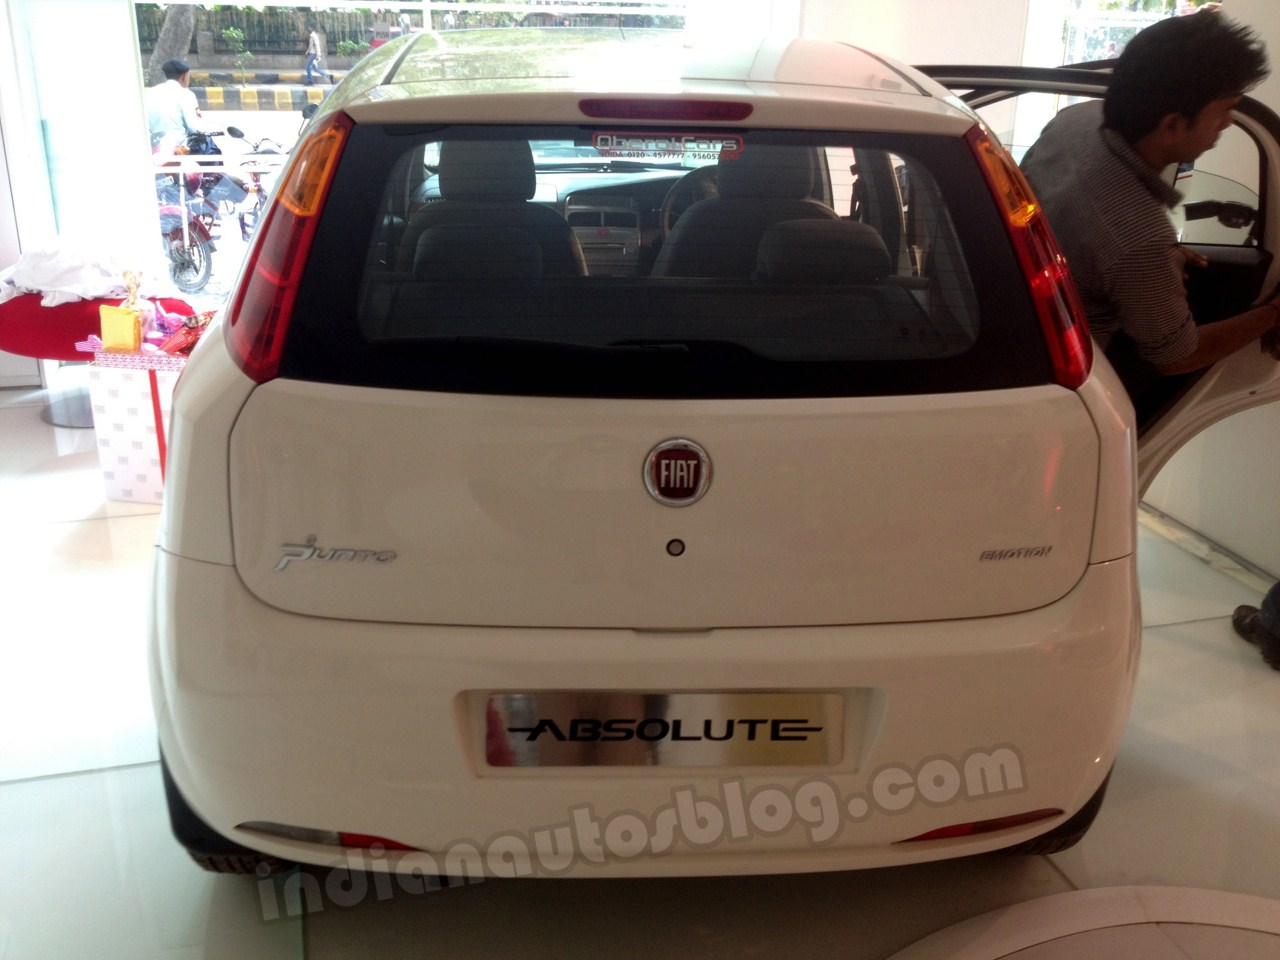 Fiat Punto Absolute Edition rear view